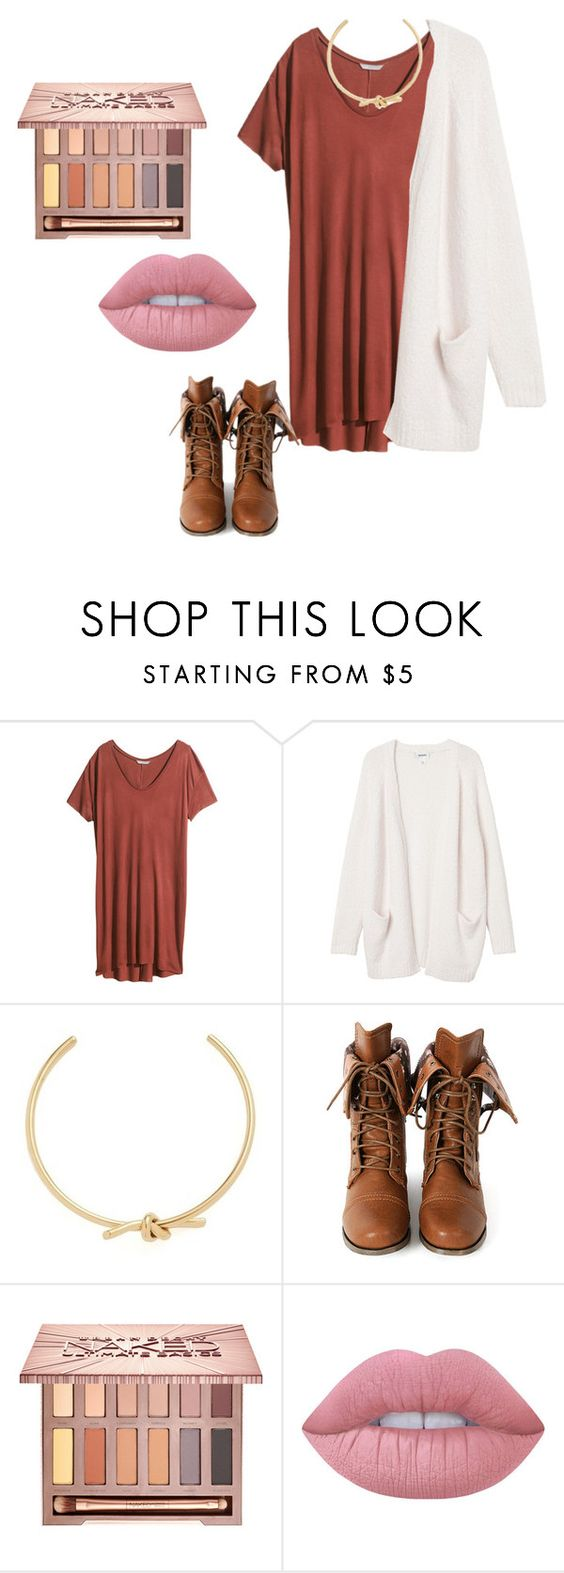 """""""Fall Dress #213"""" by dancing203 ❤ liked on Polyvore featuring H&M, Monki, Amber Sceats, Wild Diva, Urban Decay and Lime Crime"""